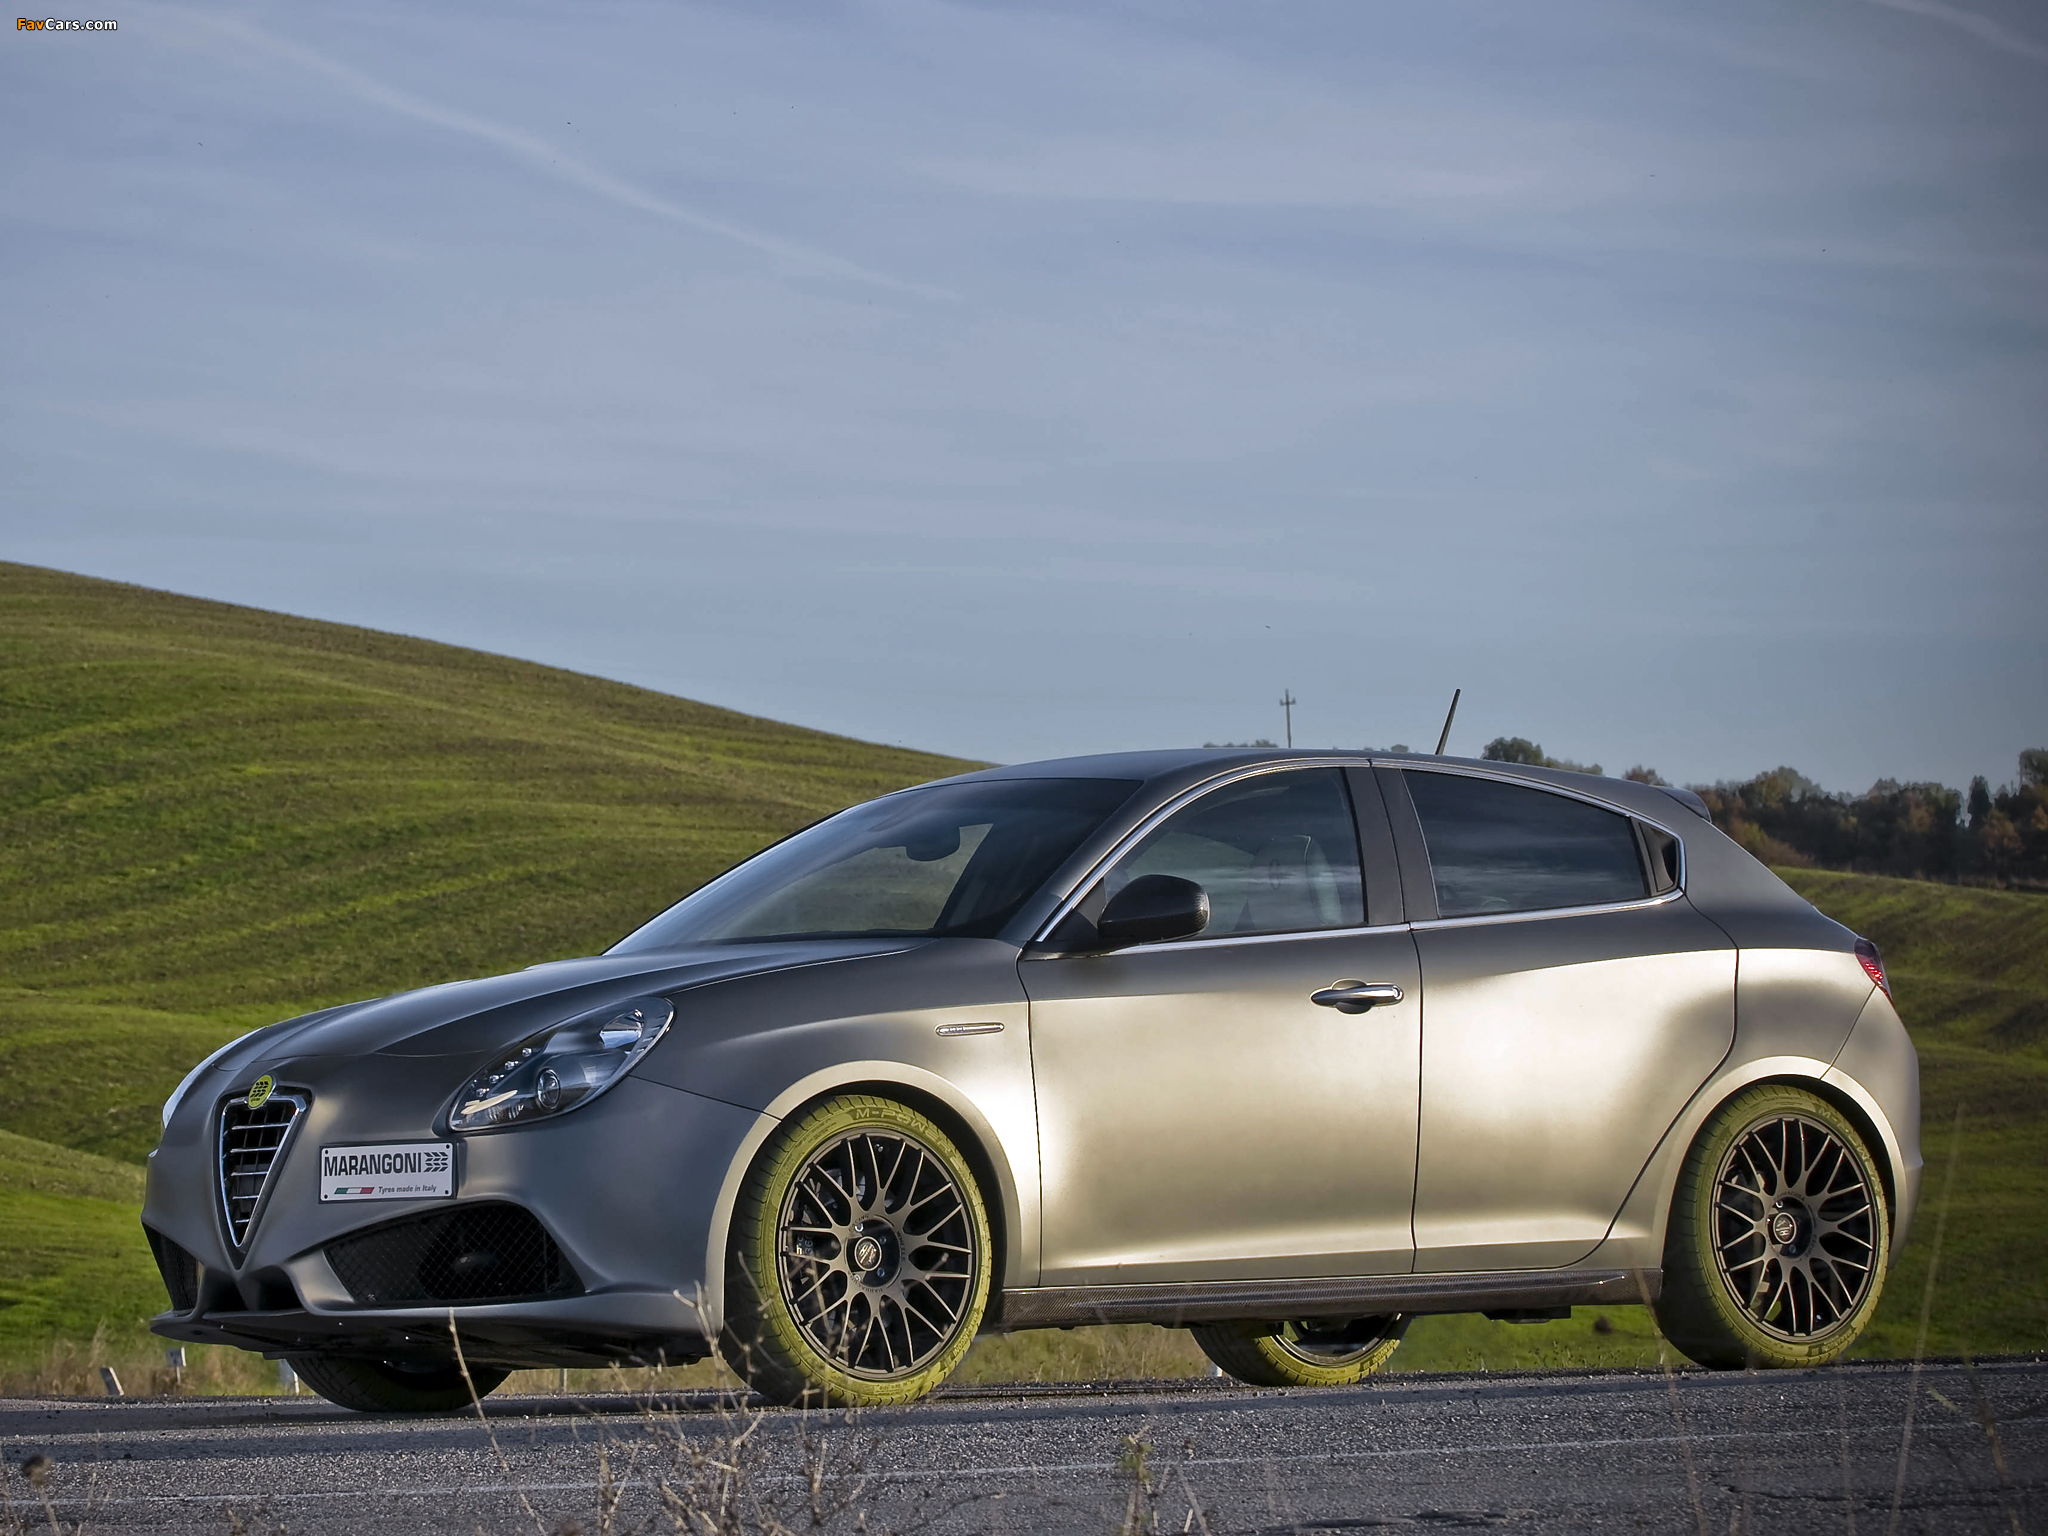 alfa romeo giulietta g430 - photo #6